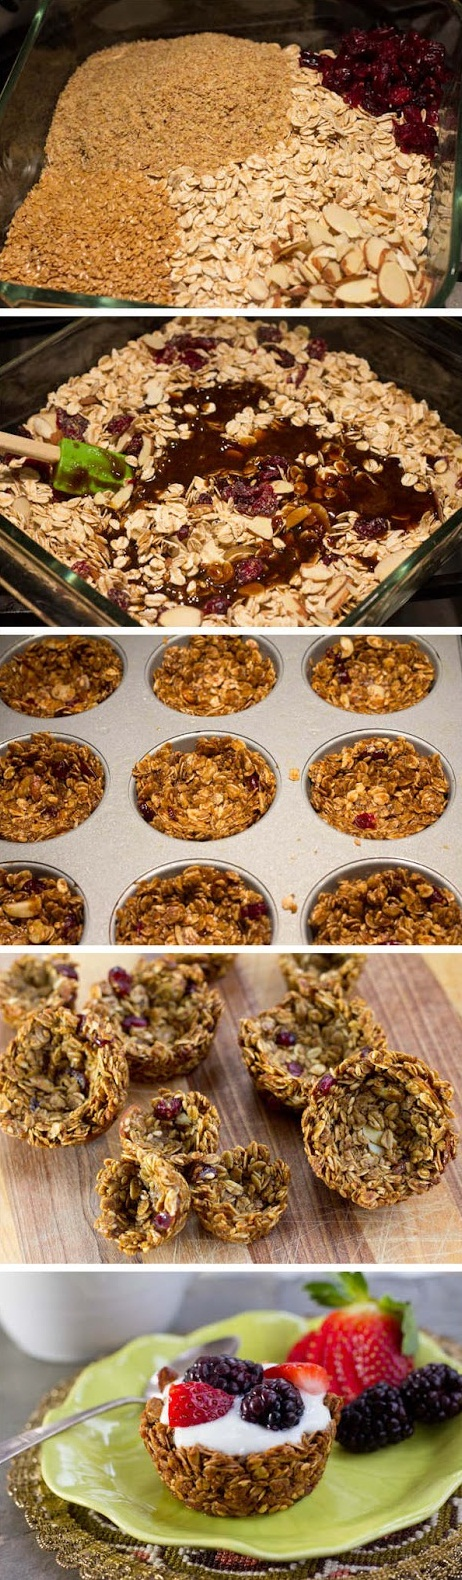 Morning-Time-Breakfast-Granola-Cups